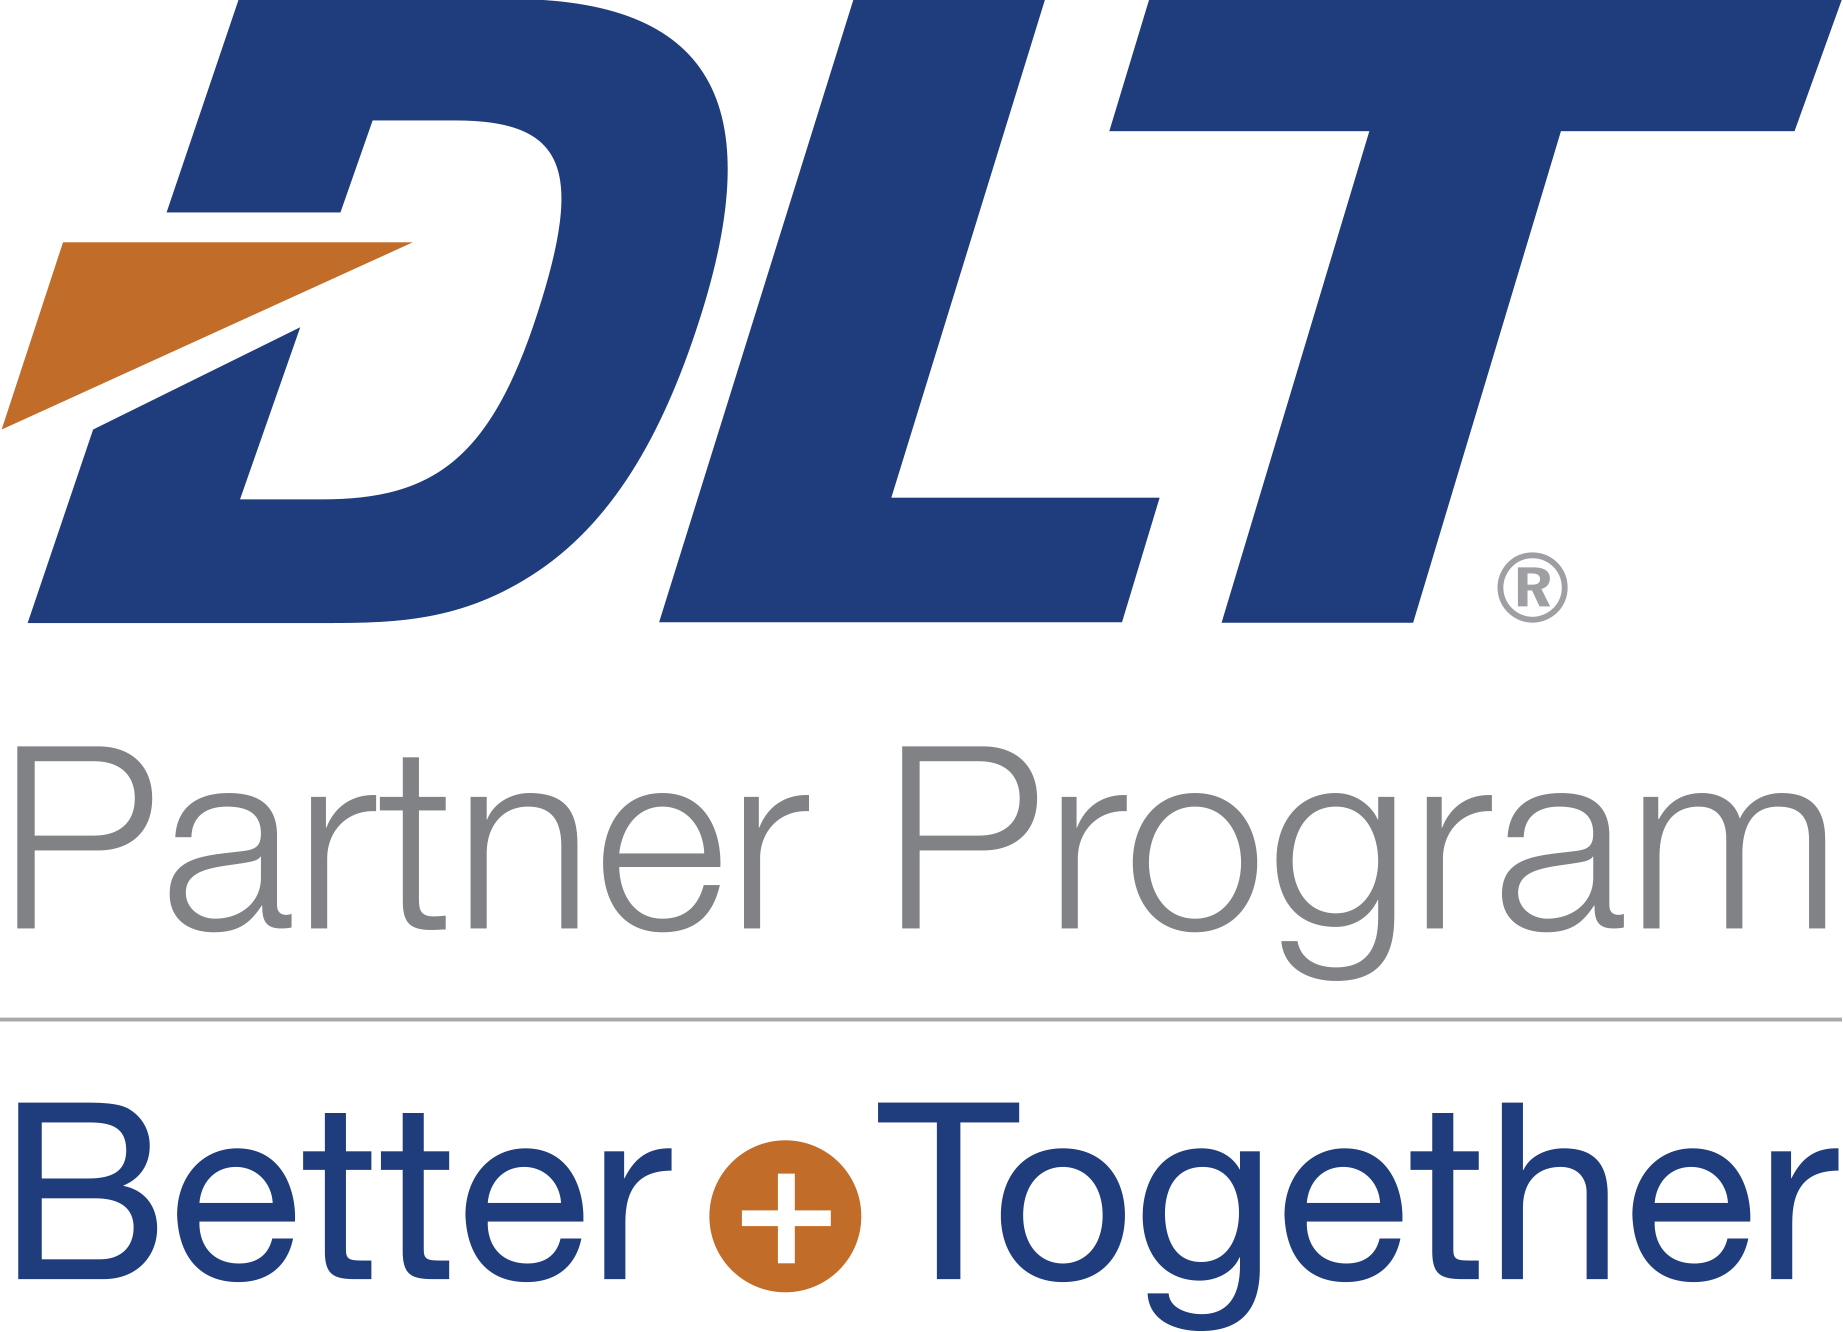 Better Together Partner Program